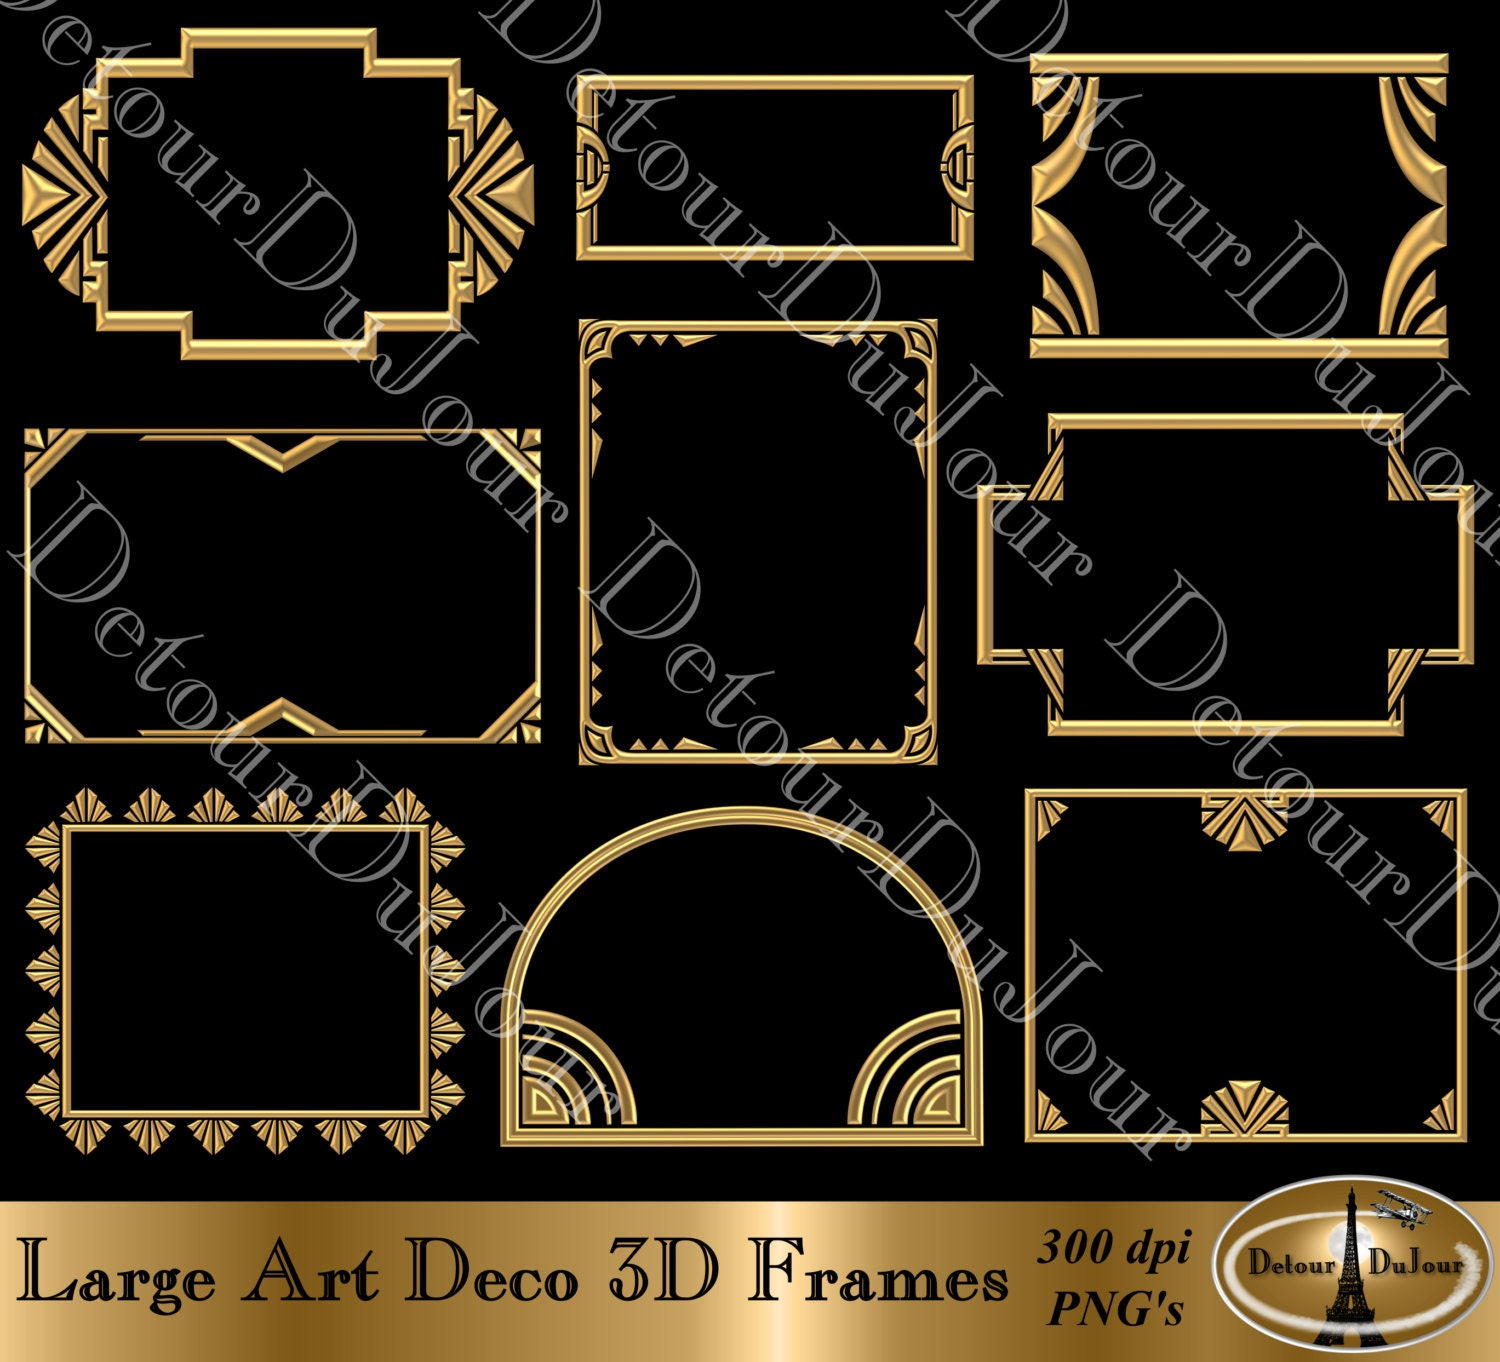 Digital Art-Deco-Rahmen Art-Deco-Grenzen Art-Deco-Clipart 9 | Etsy